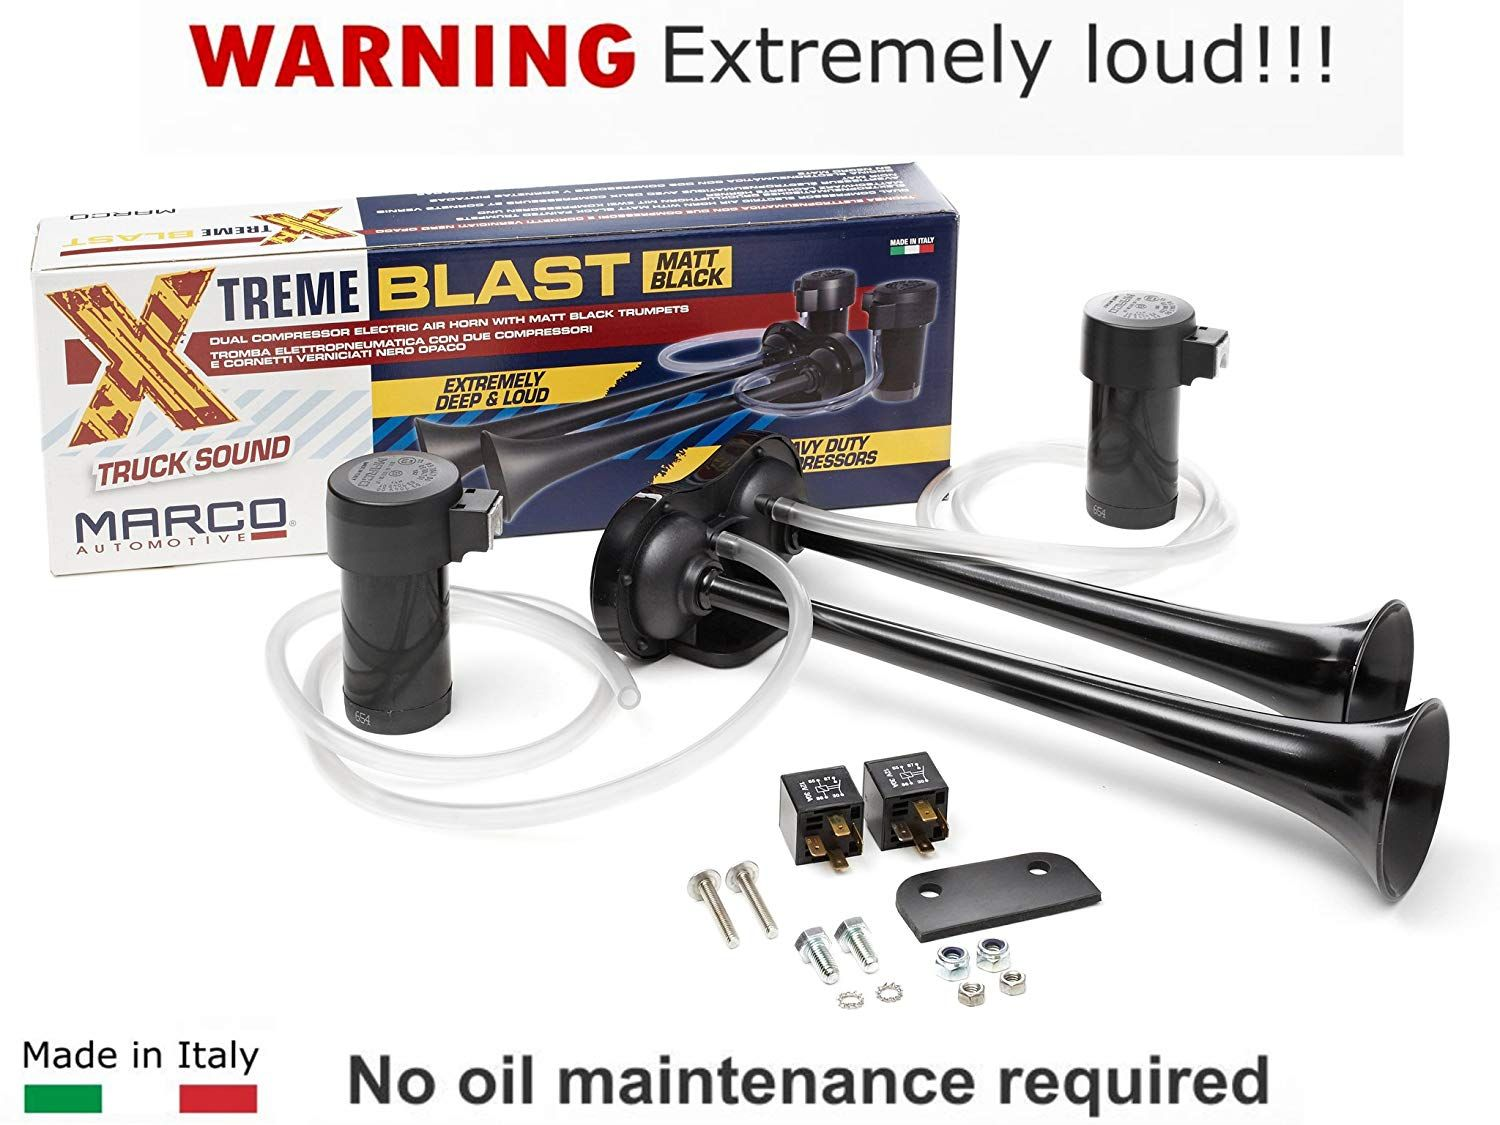 Super Loud 148db Marco Extreme Blast Premium Air Horn Car Truck